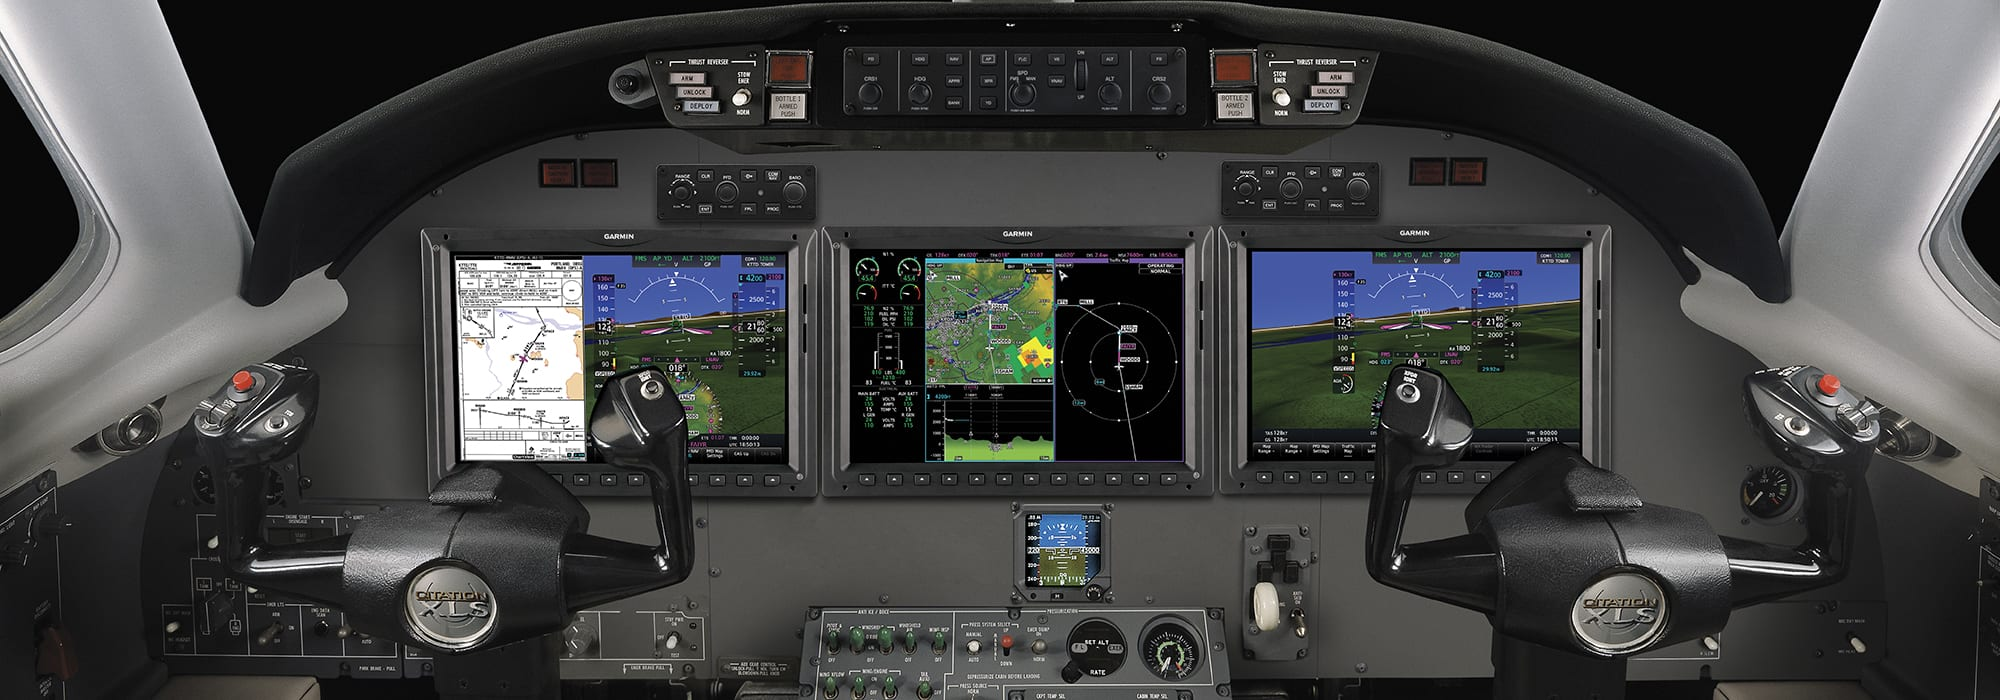 The Garmin G5000 for the Citation Excel and XLS